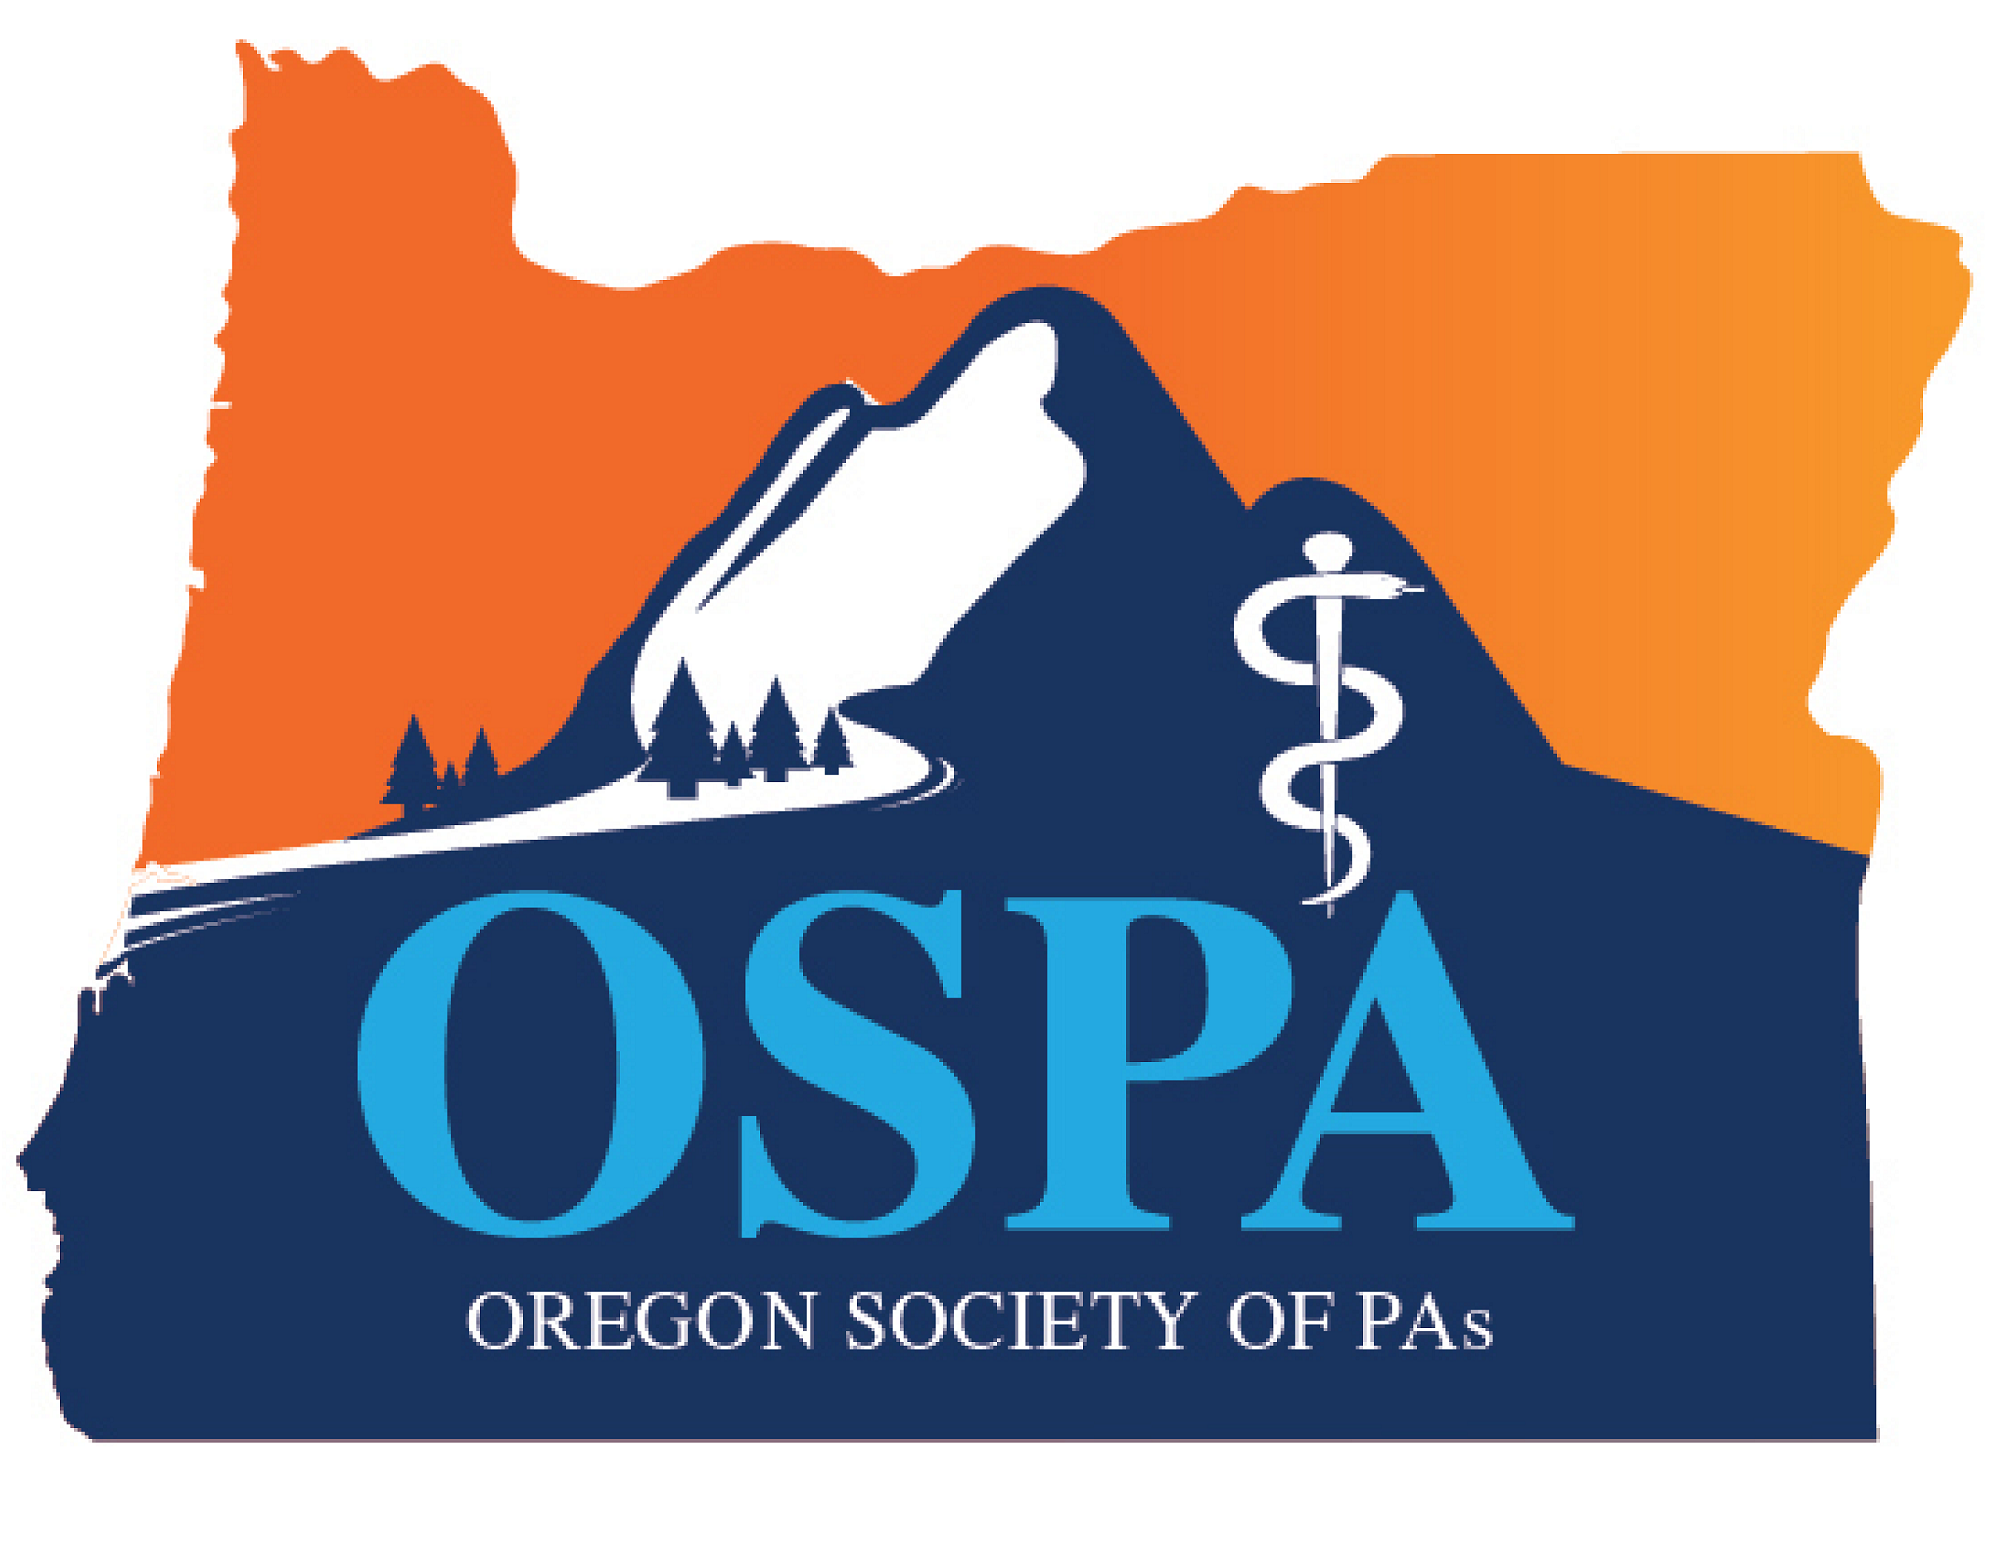 Physician Assistant Jobs - Oregon Society of Physician